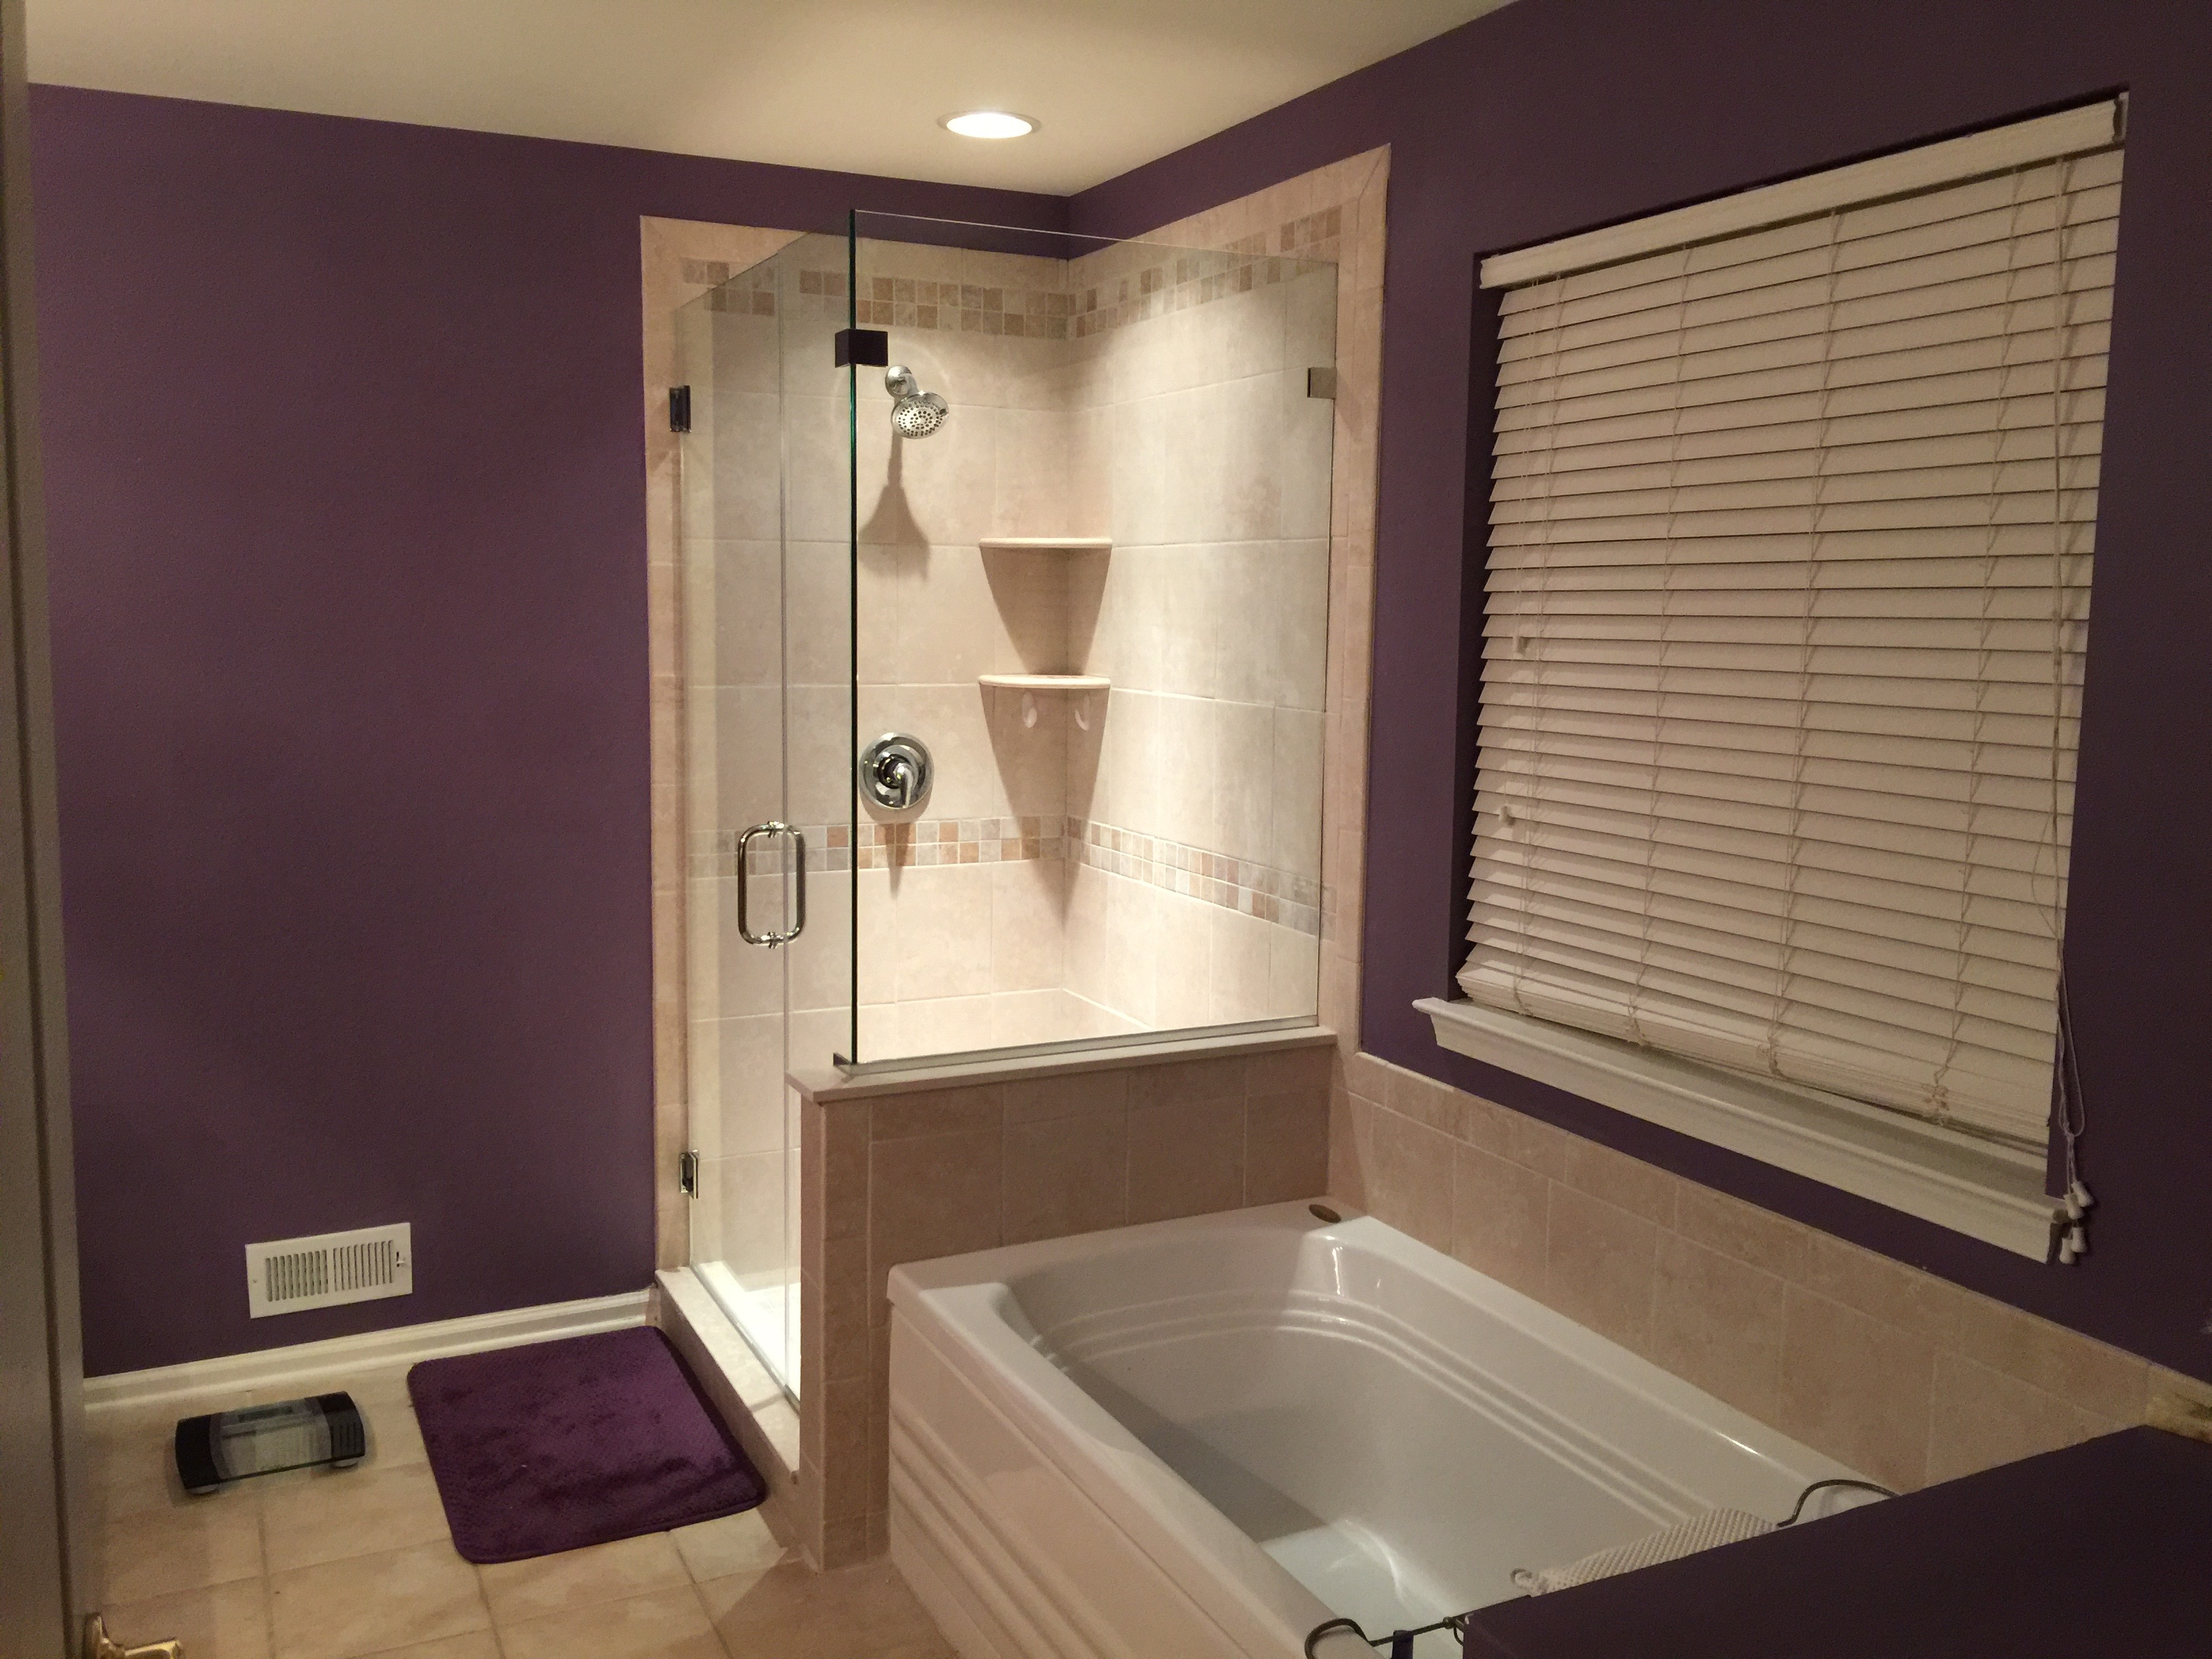 Bathroom remodel in mantua located in south jersey a for Bath remodel nj